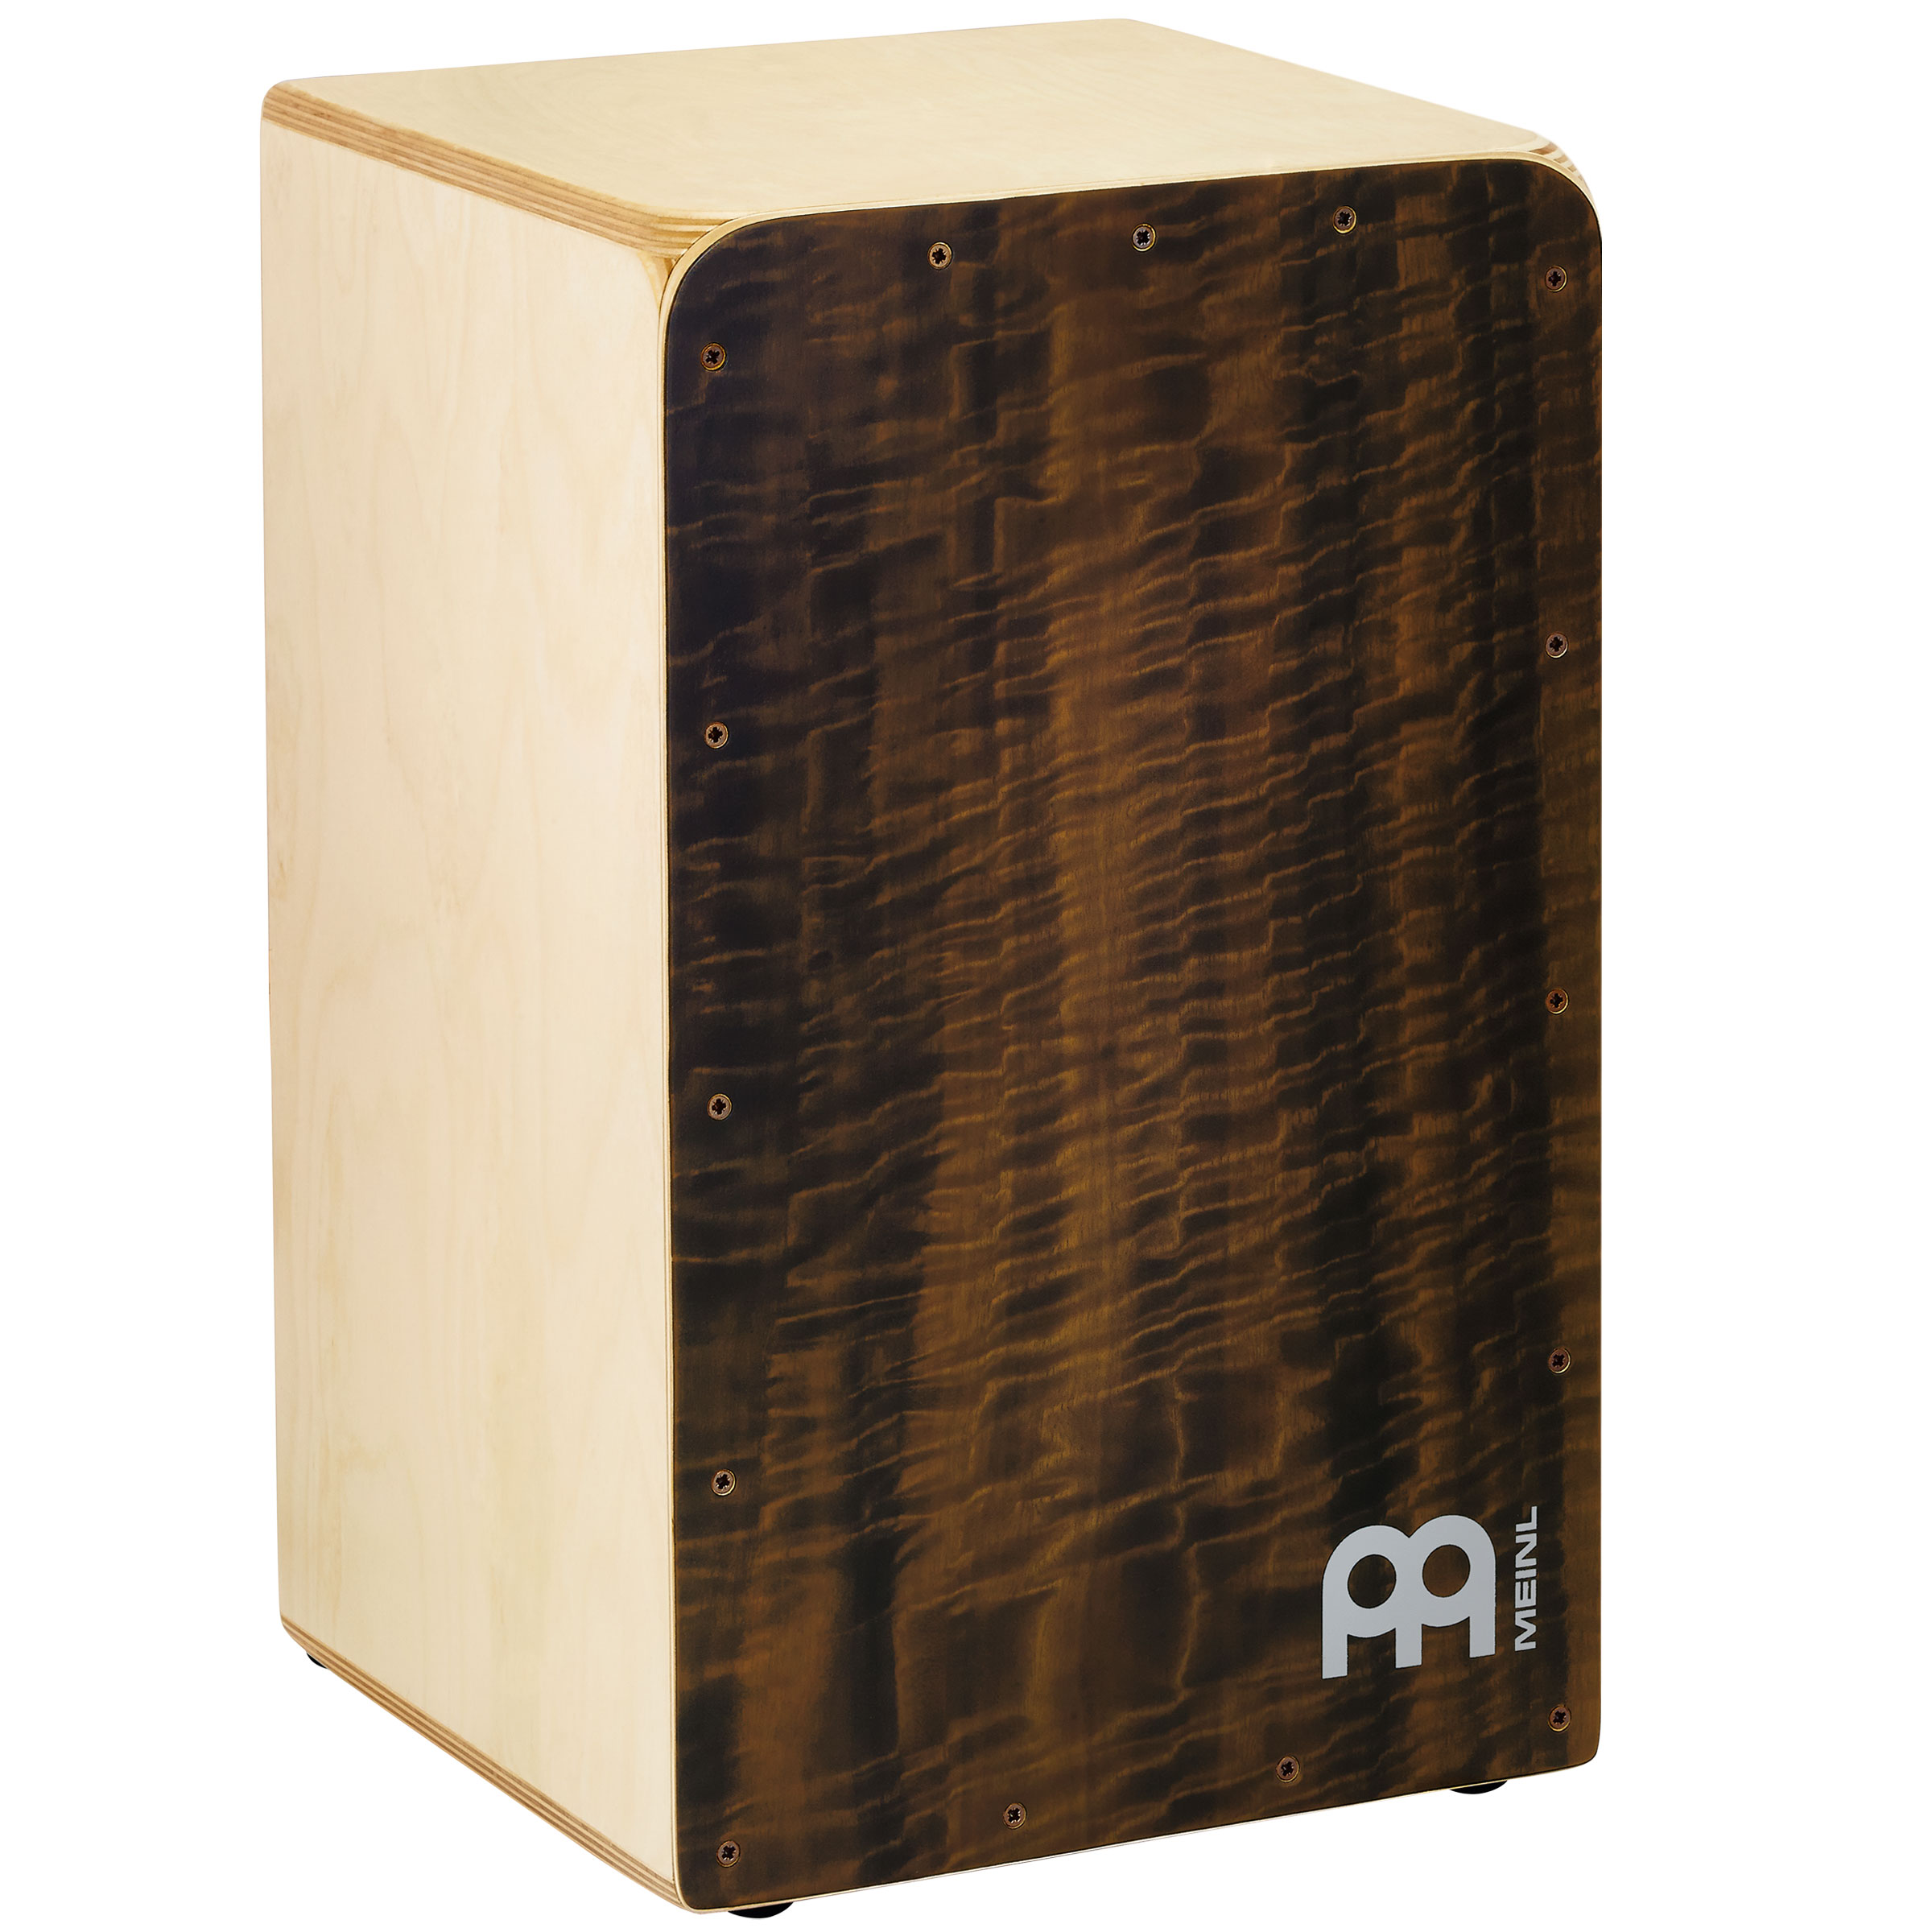 Meinl Woodcraft Cajon with Quilted Eucalyptus Frontplate